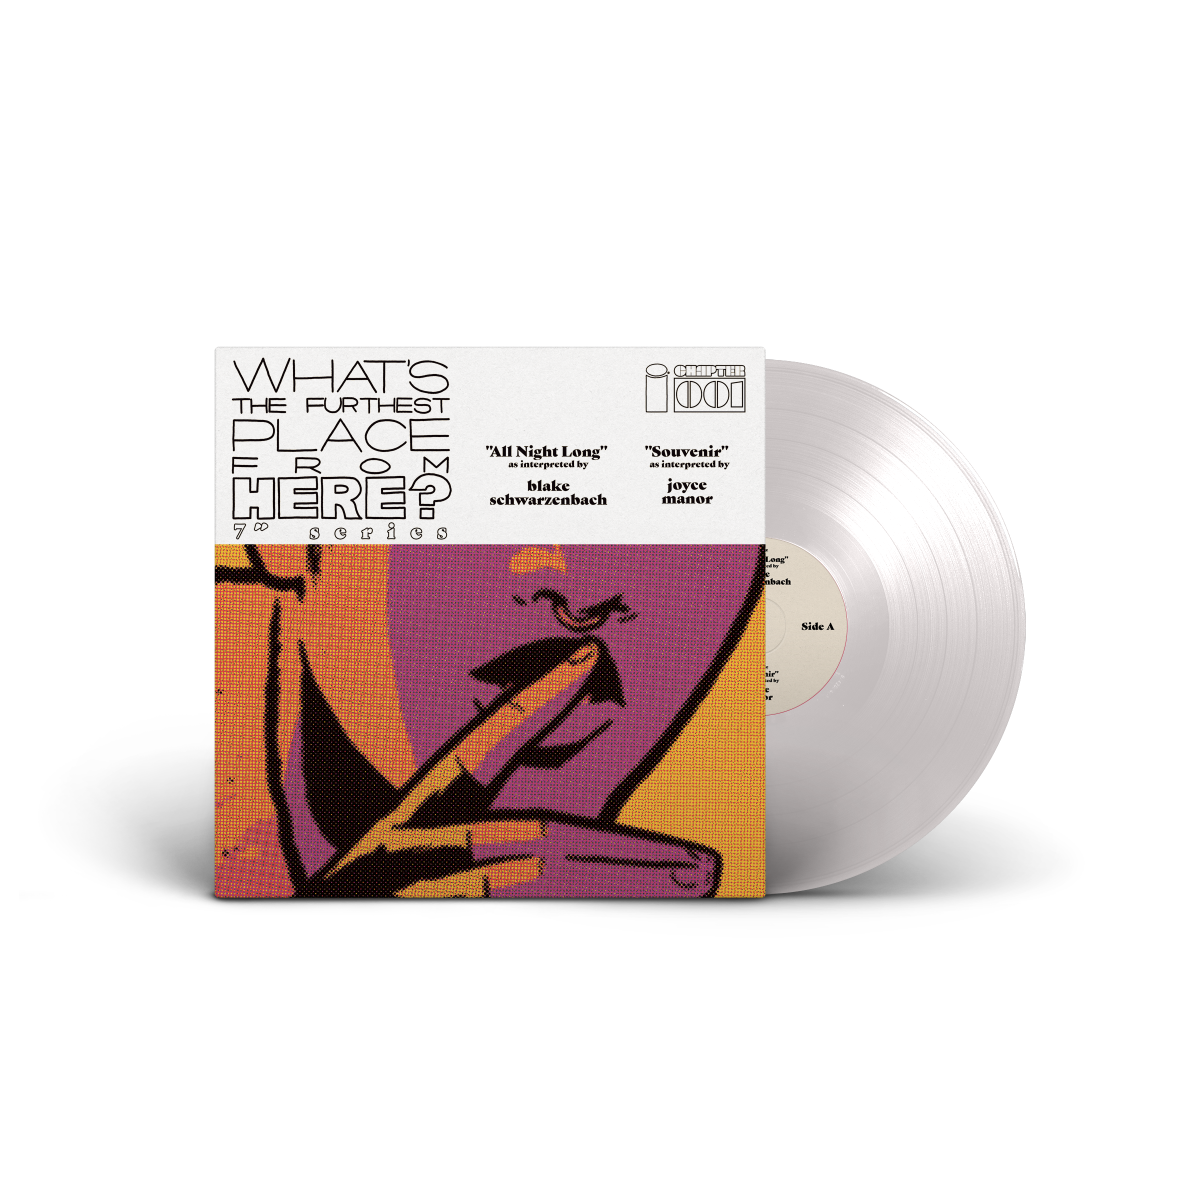 Image adds encore album pressings for 'What's the Furthest Place From Here?' deluxe edition